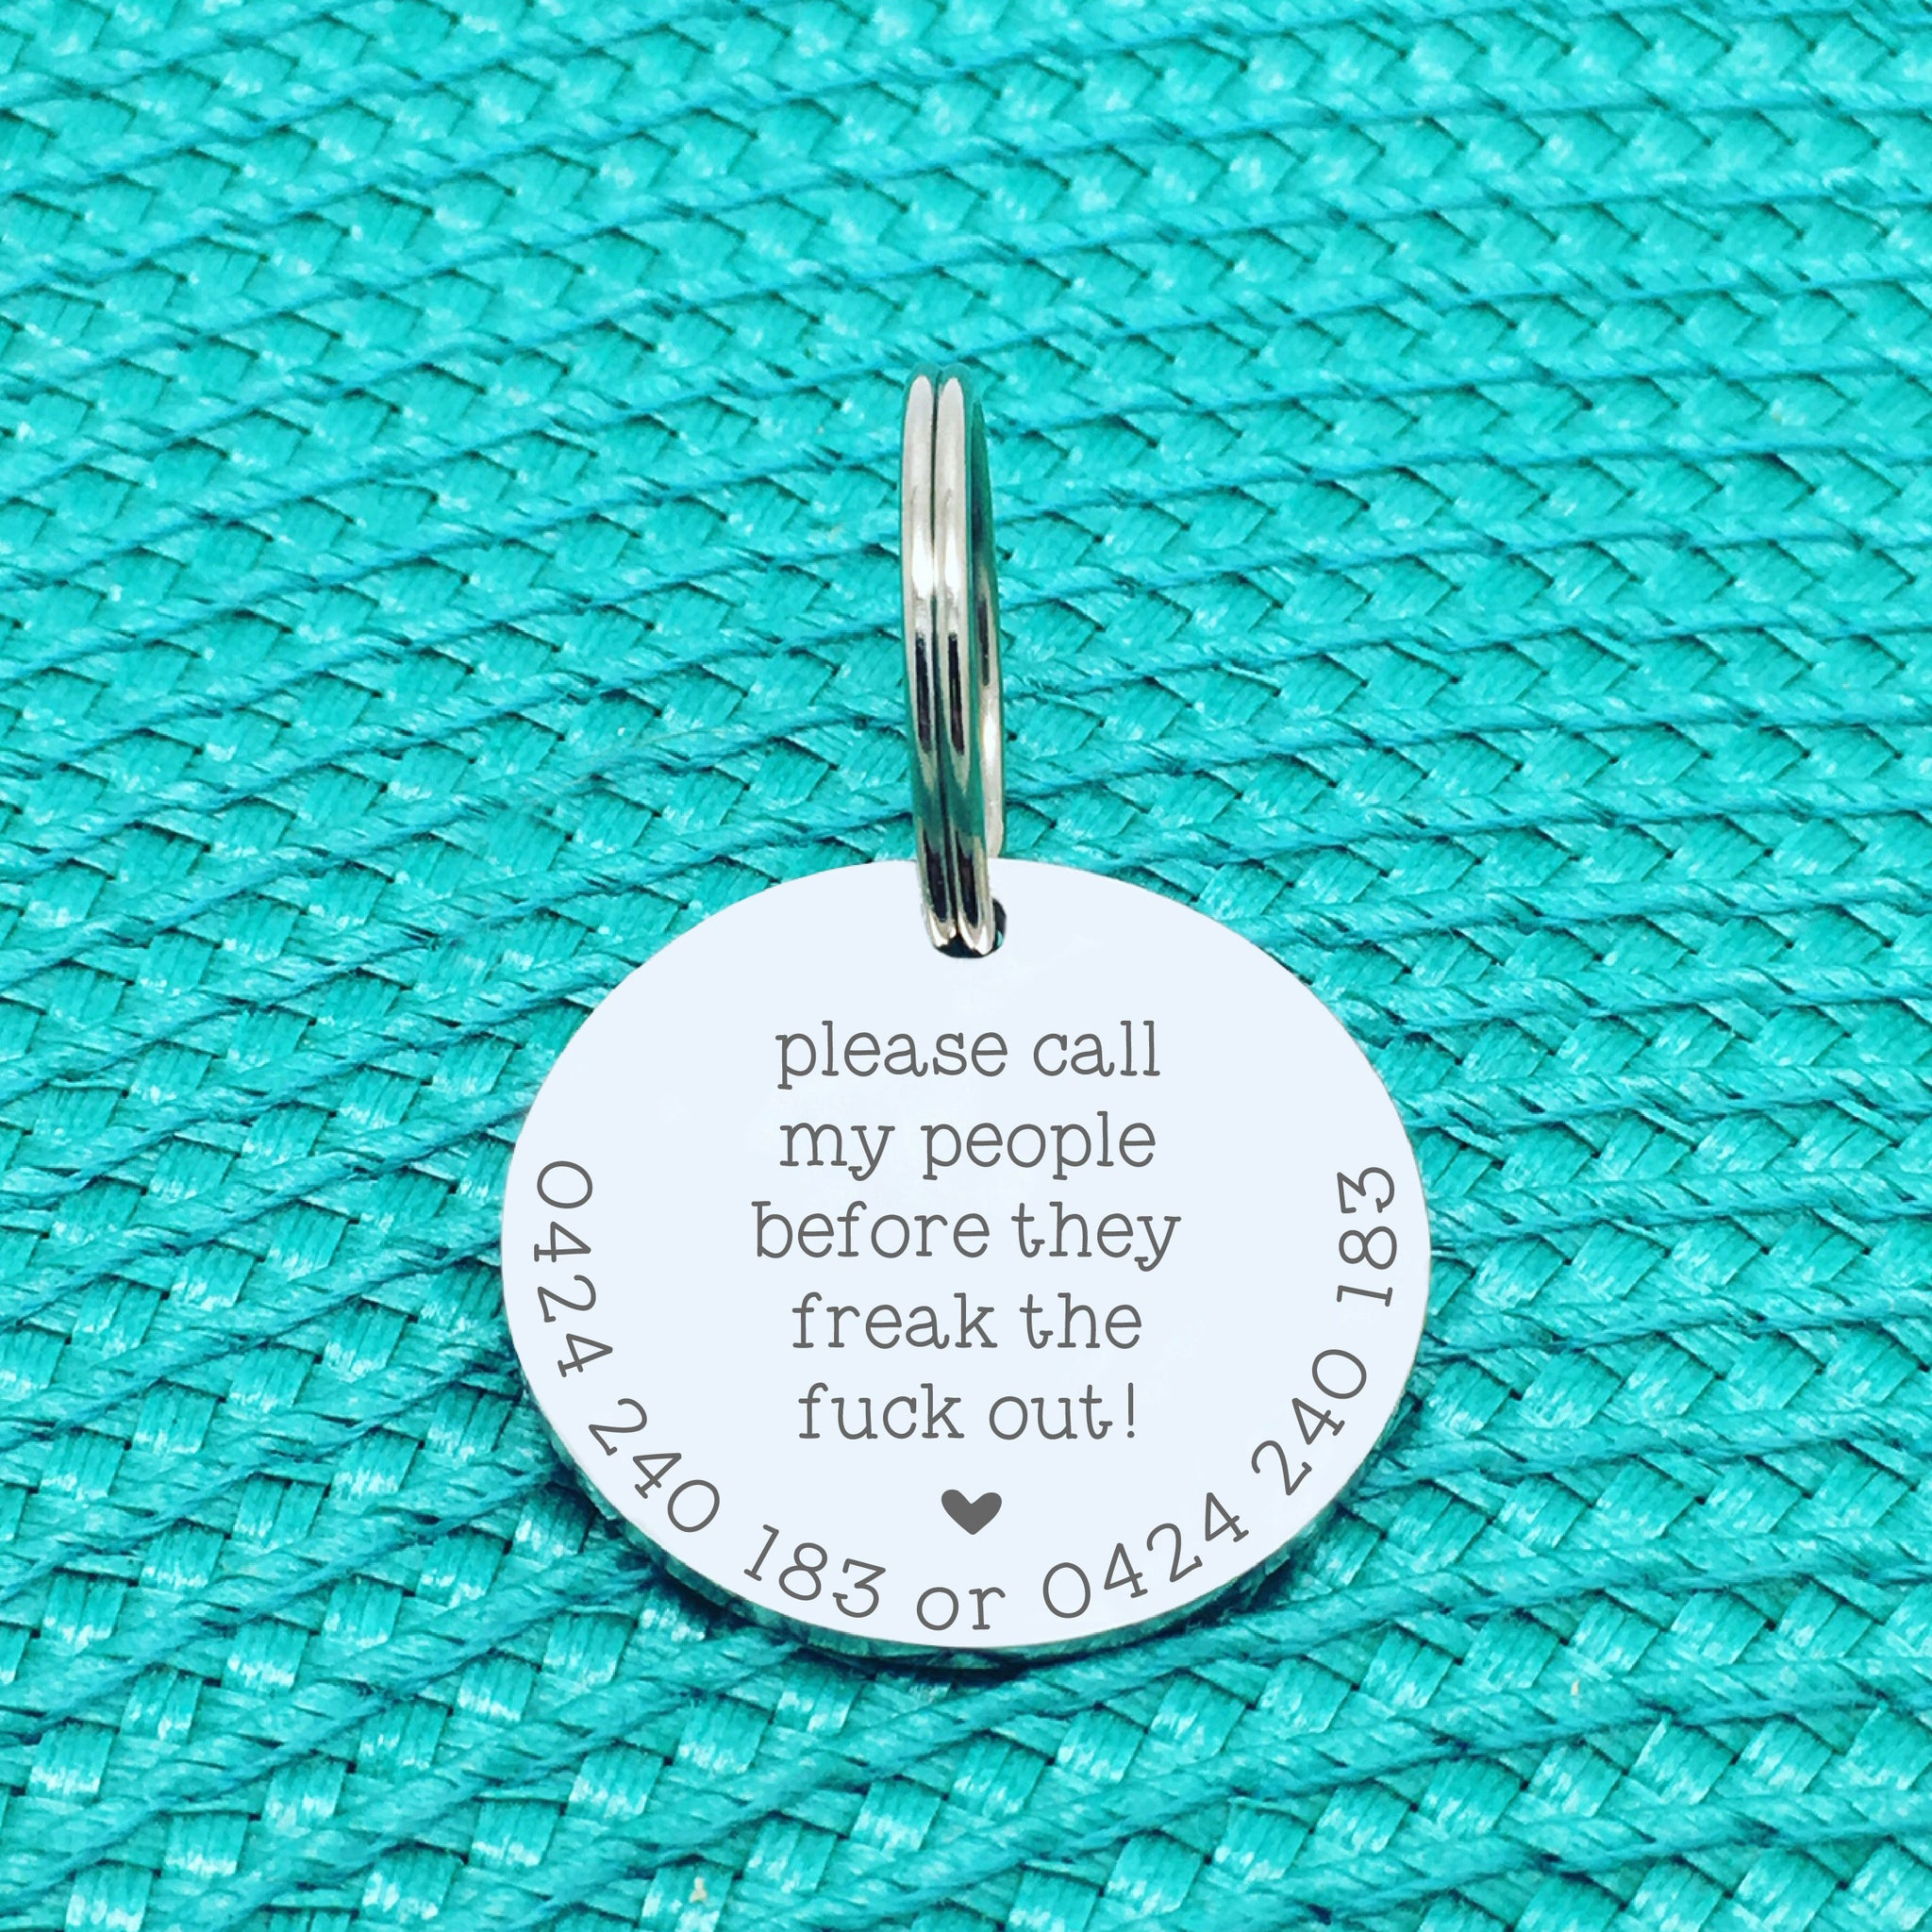 Personalised Pet Tag - Please Call My People Before They Freak The Fuck Out (Change People to Another Name)